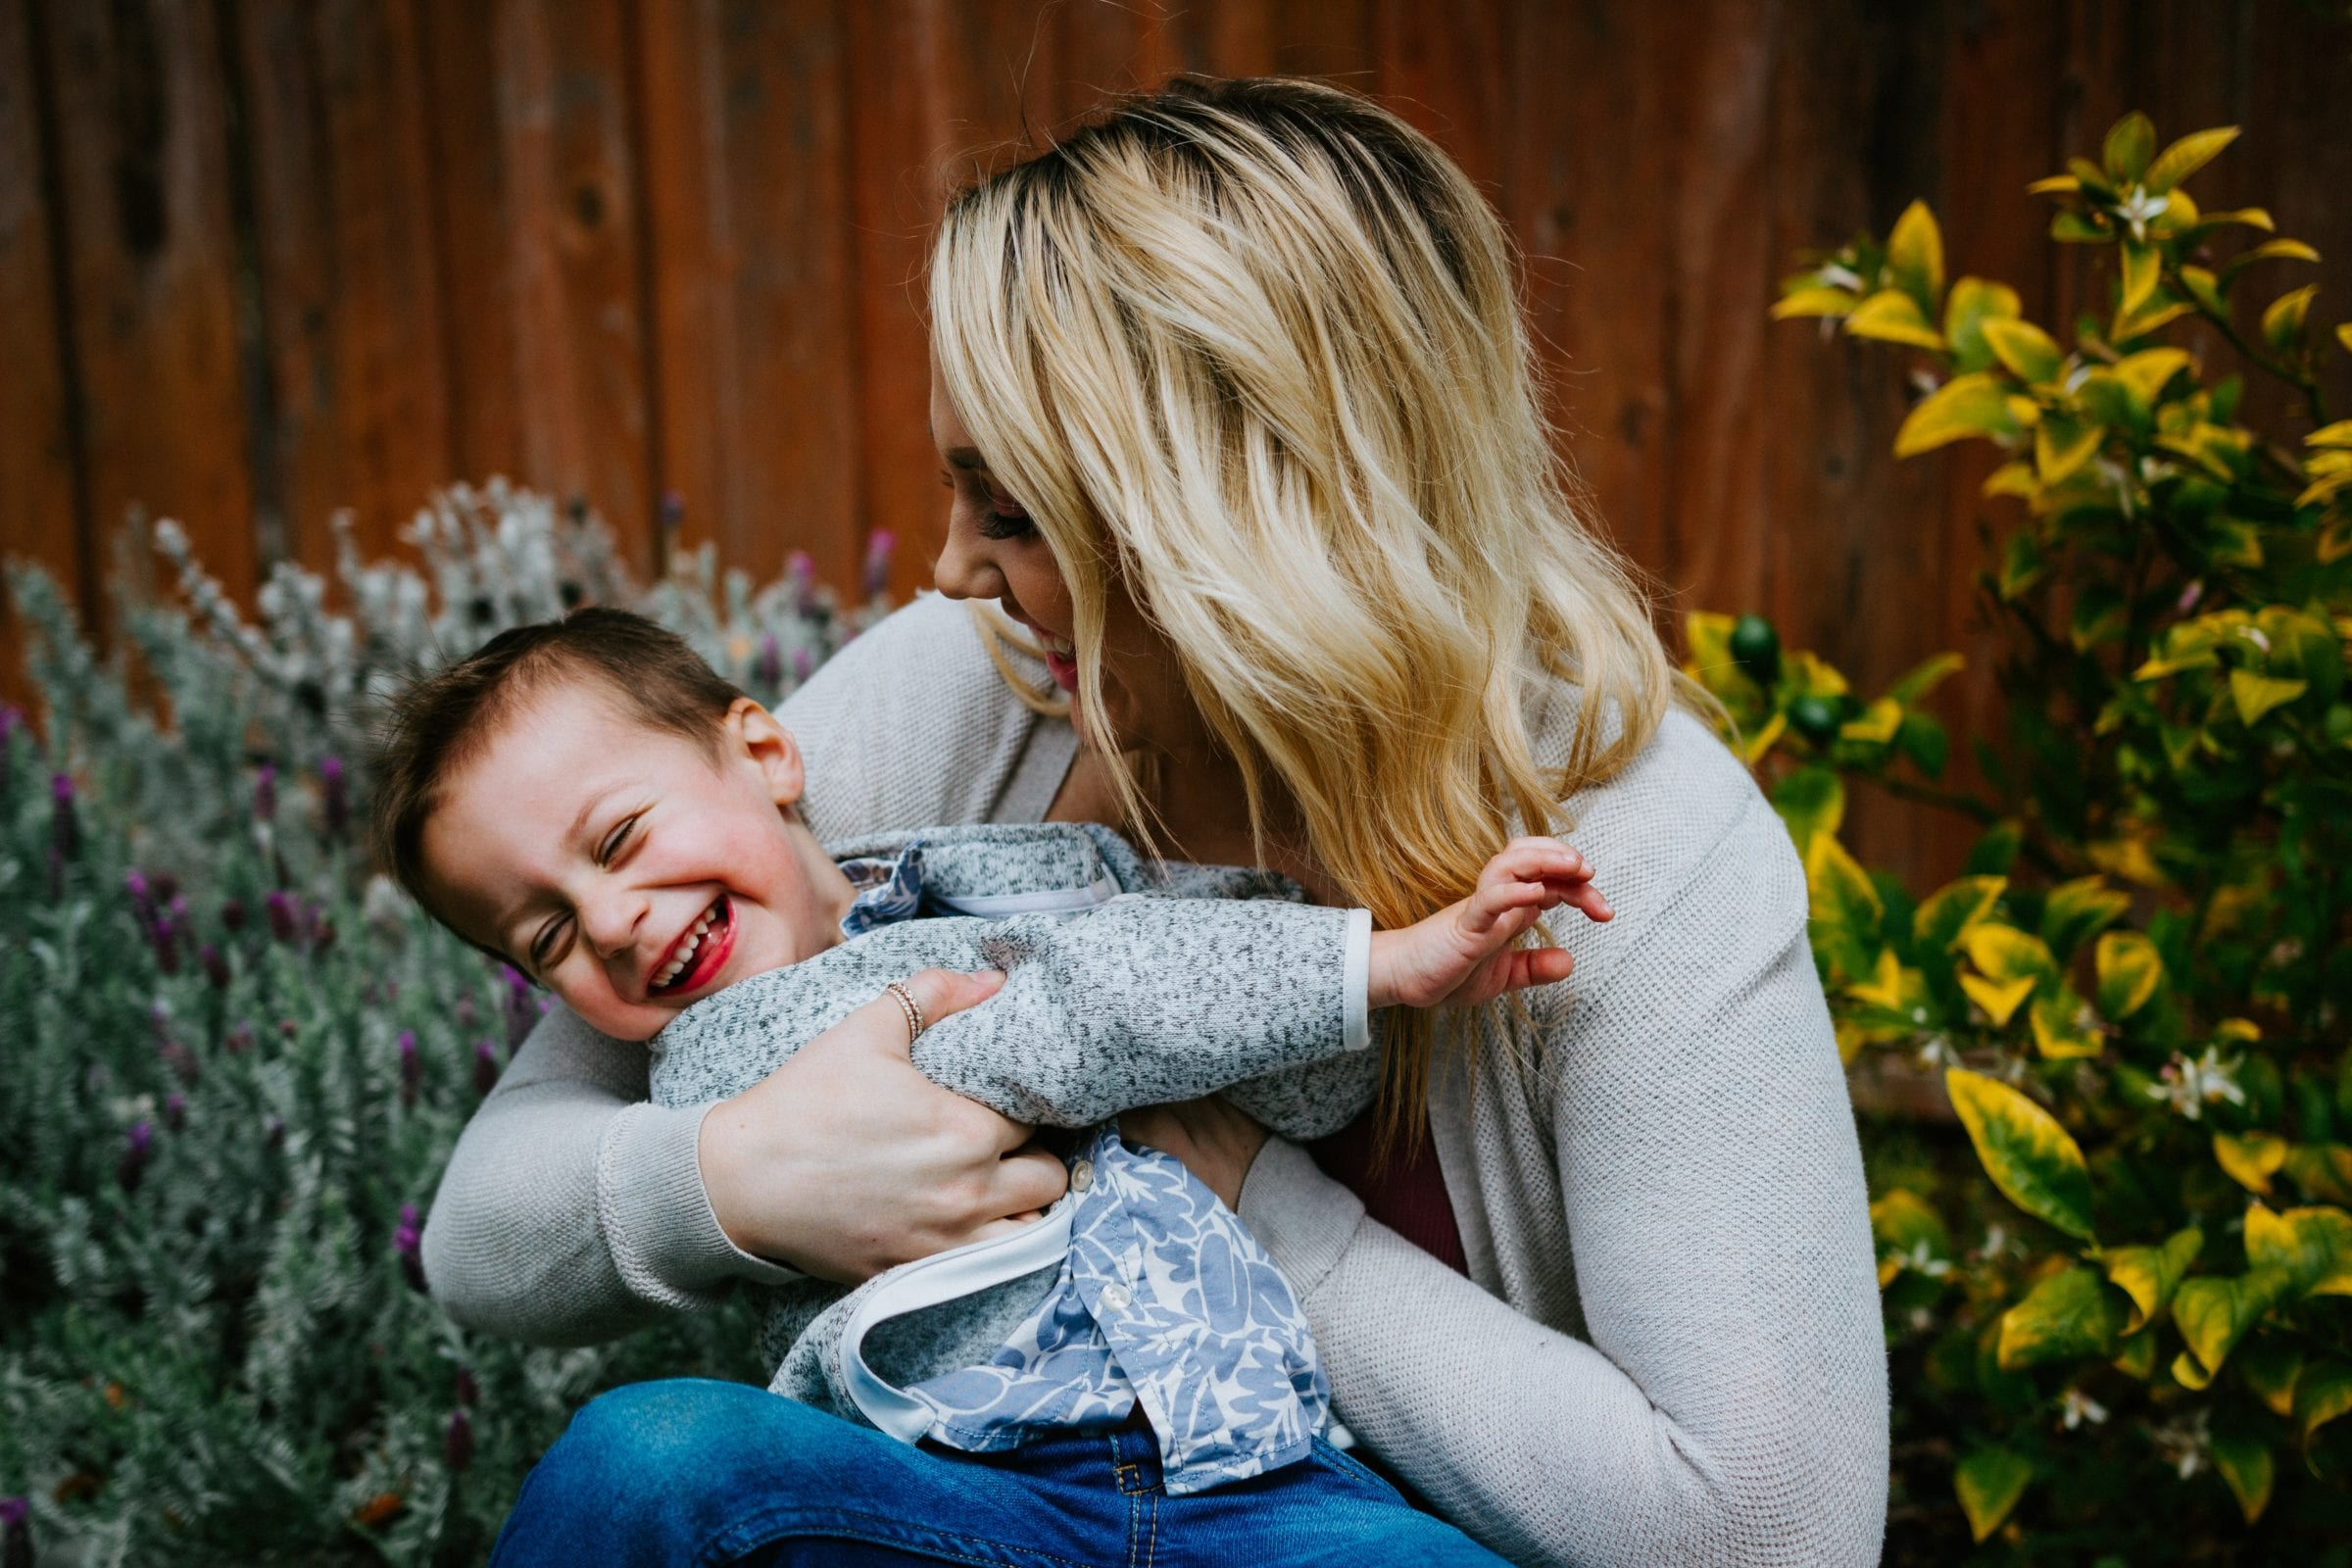 The 7 Temper Tantrum Tips You Need to Know from The Parentologist